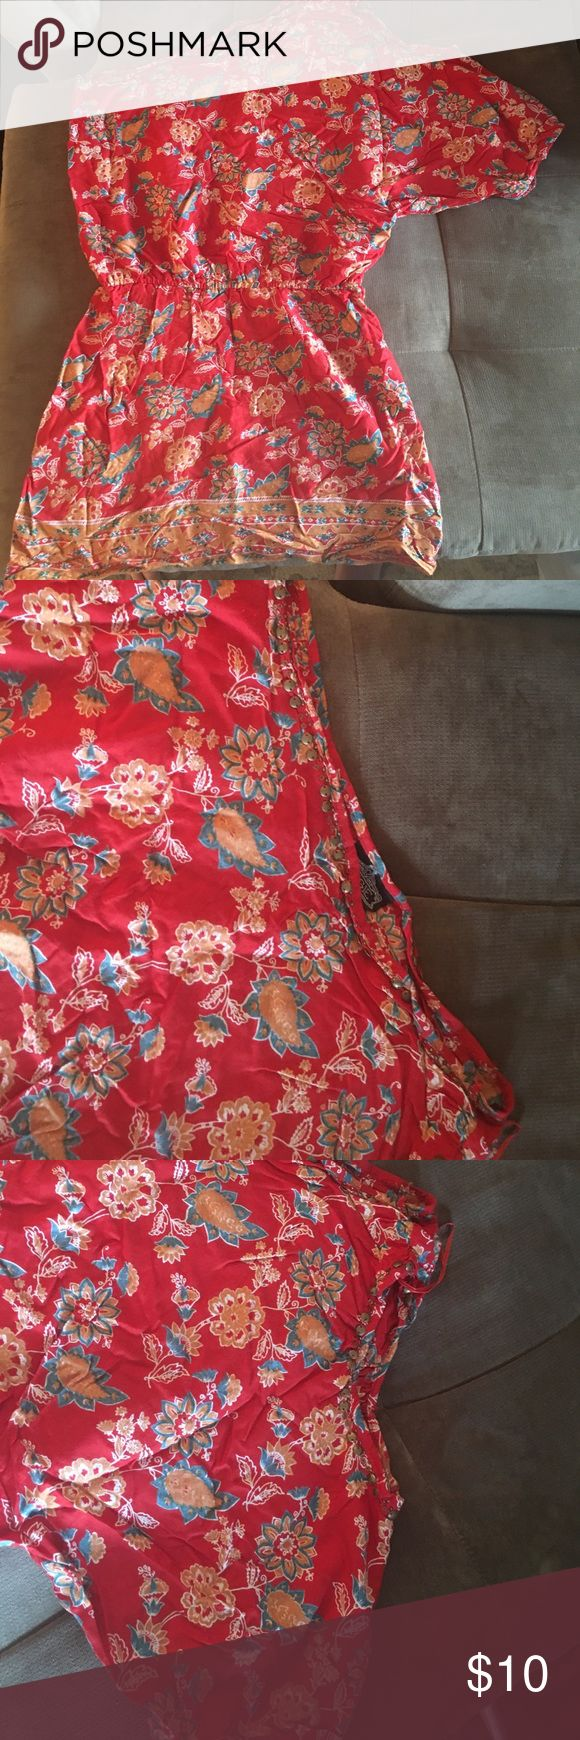 Super cute tomato red sundress Gold bead accents on neck and shoulder. Worn once for a wedding in the Bahamas. Looked great with gold espadrilles. Can also be used as a bathing suit cover up. Angie Dresses One Shoulder